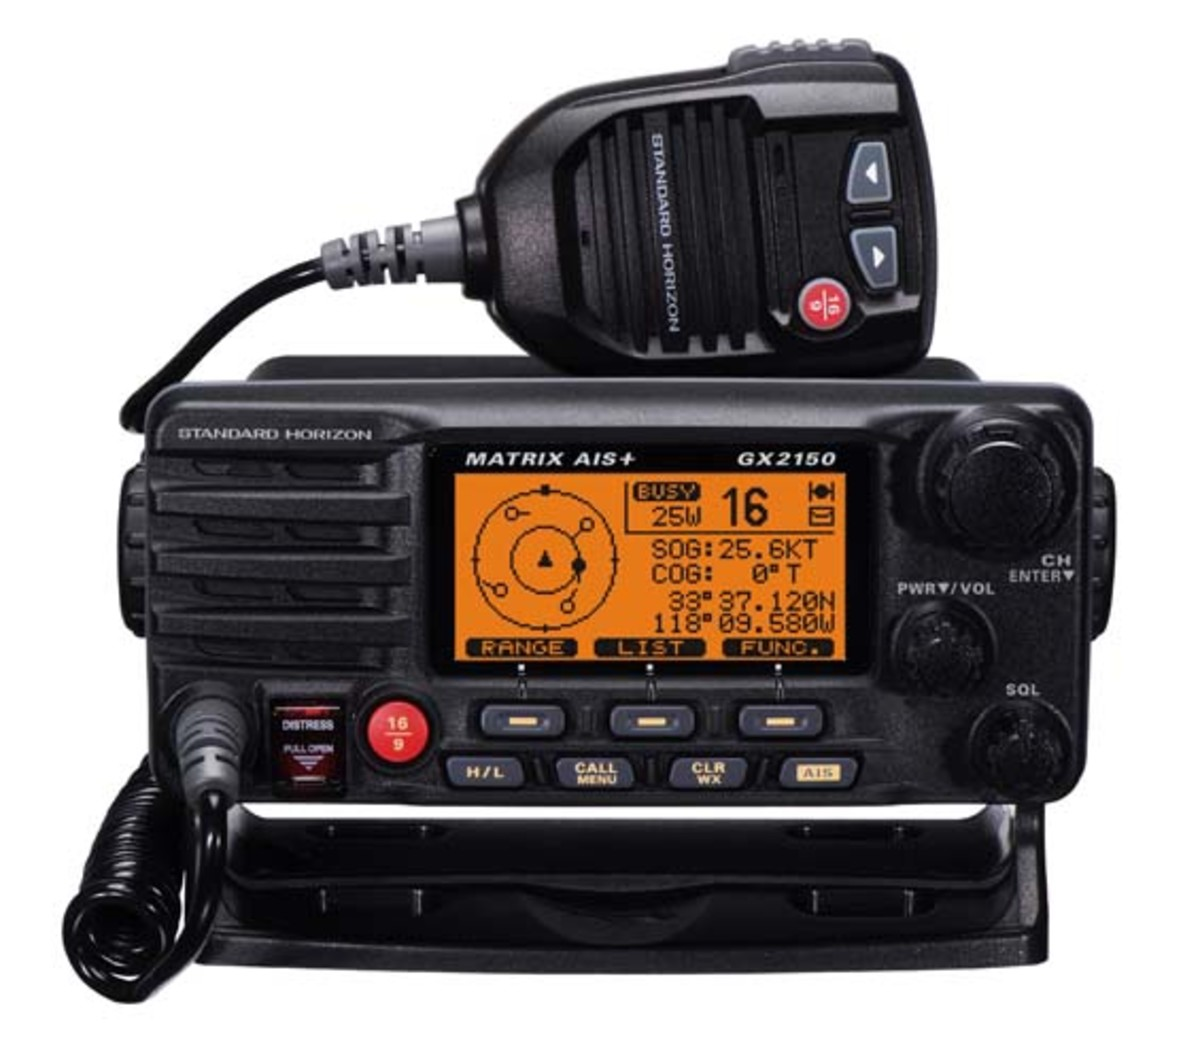 Standard Horizon GX2150 VHF and AIS combination unit.